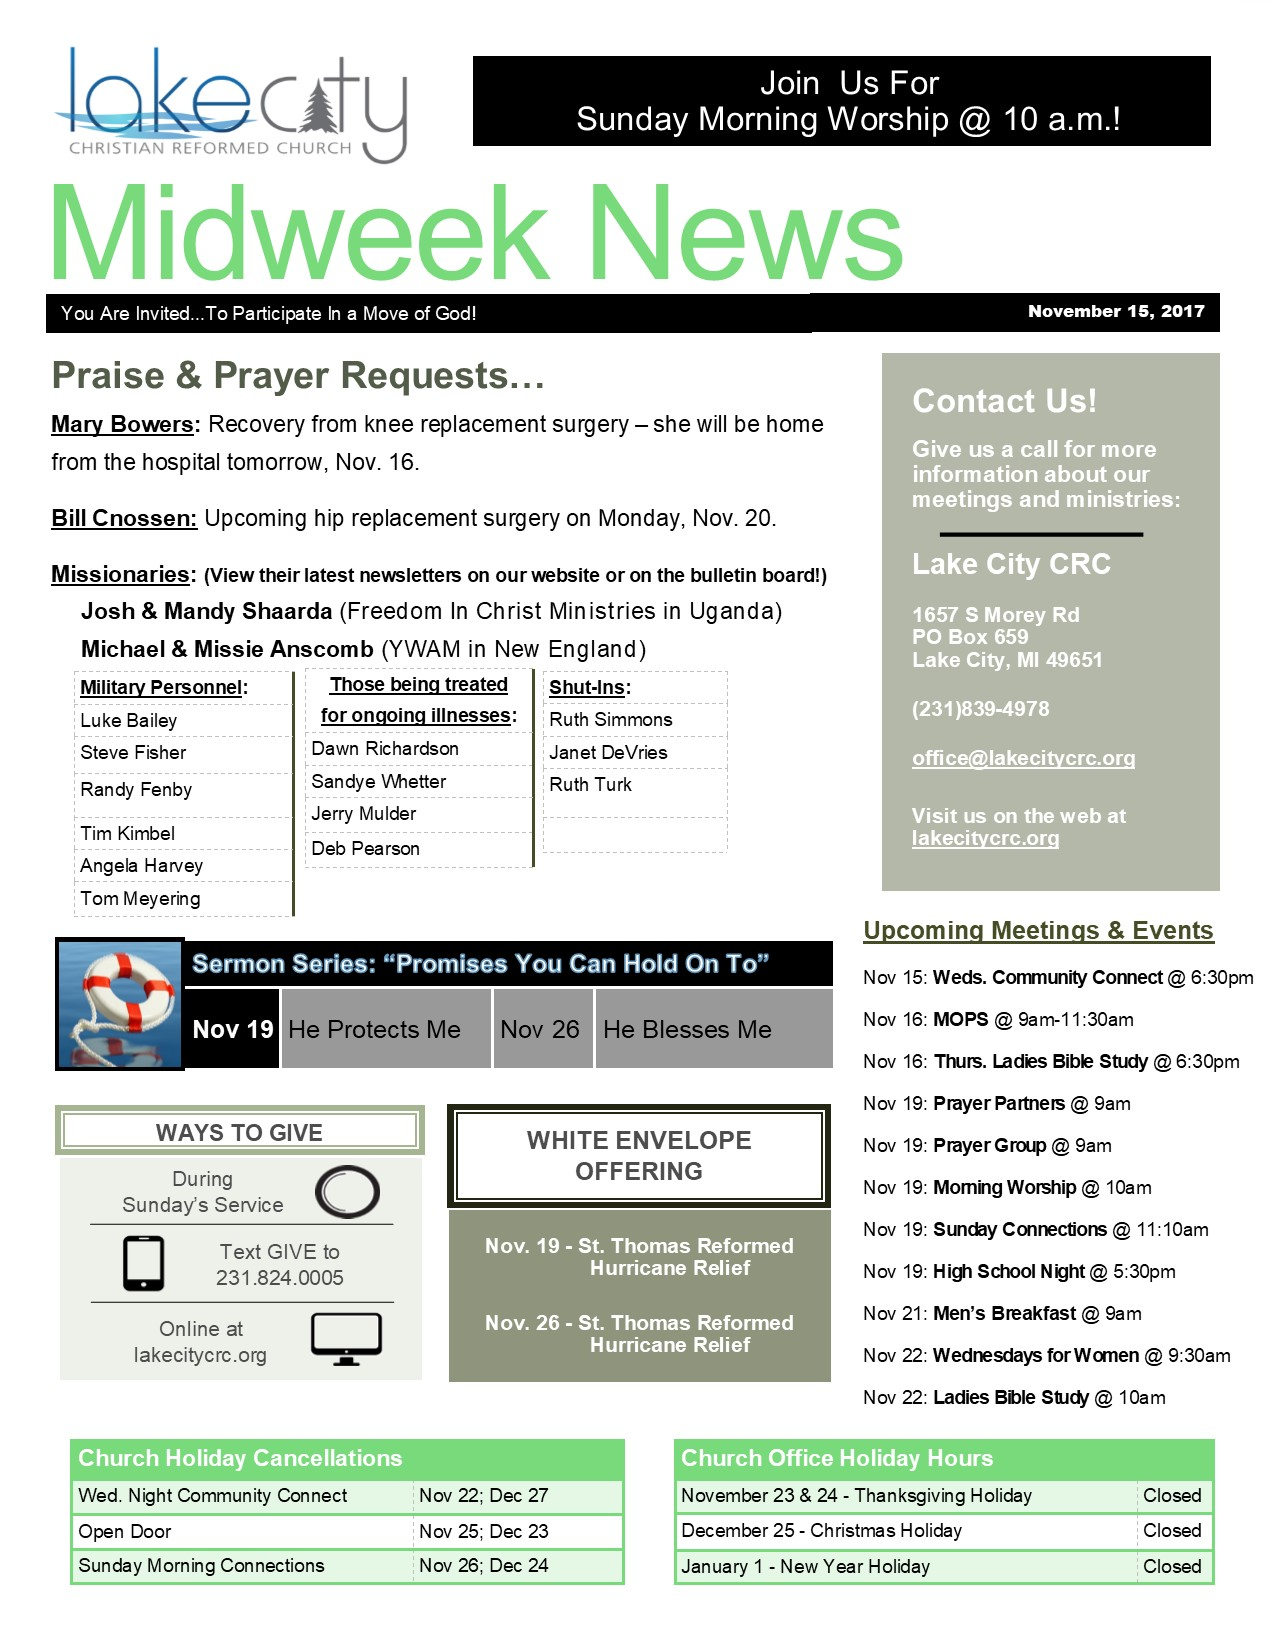 November 15, 2017 Midweek News